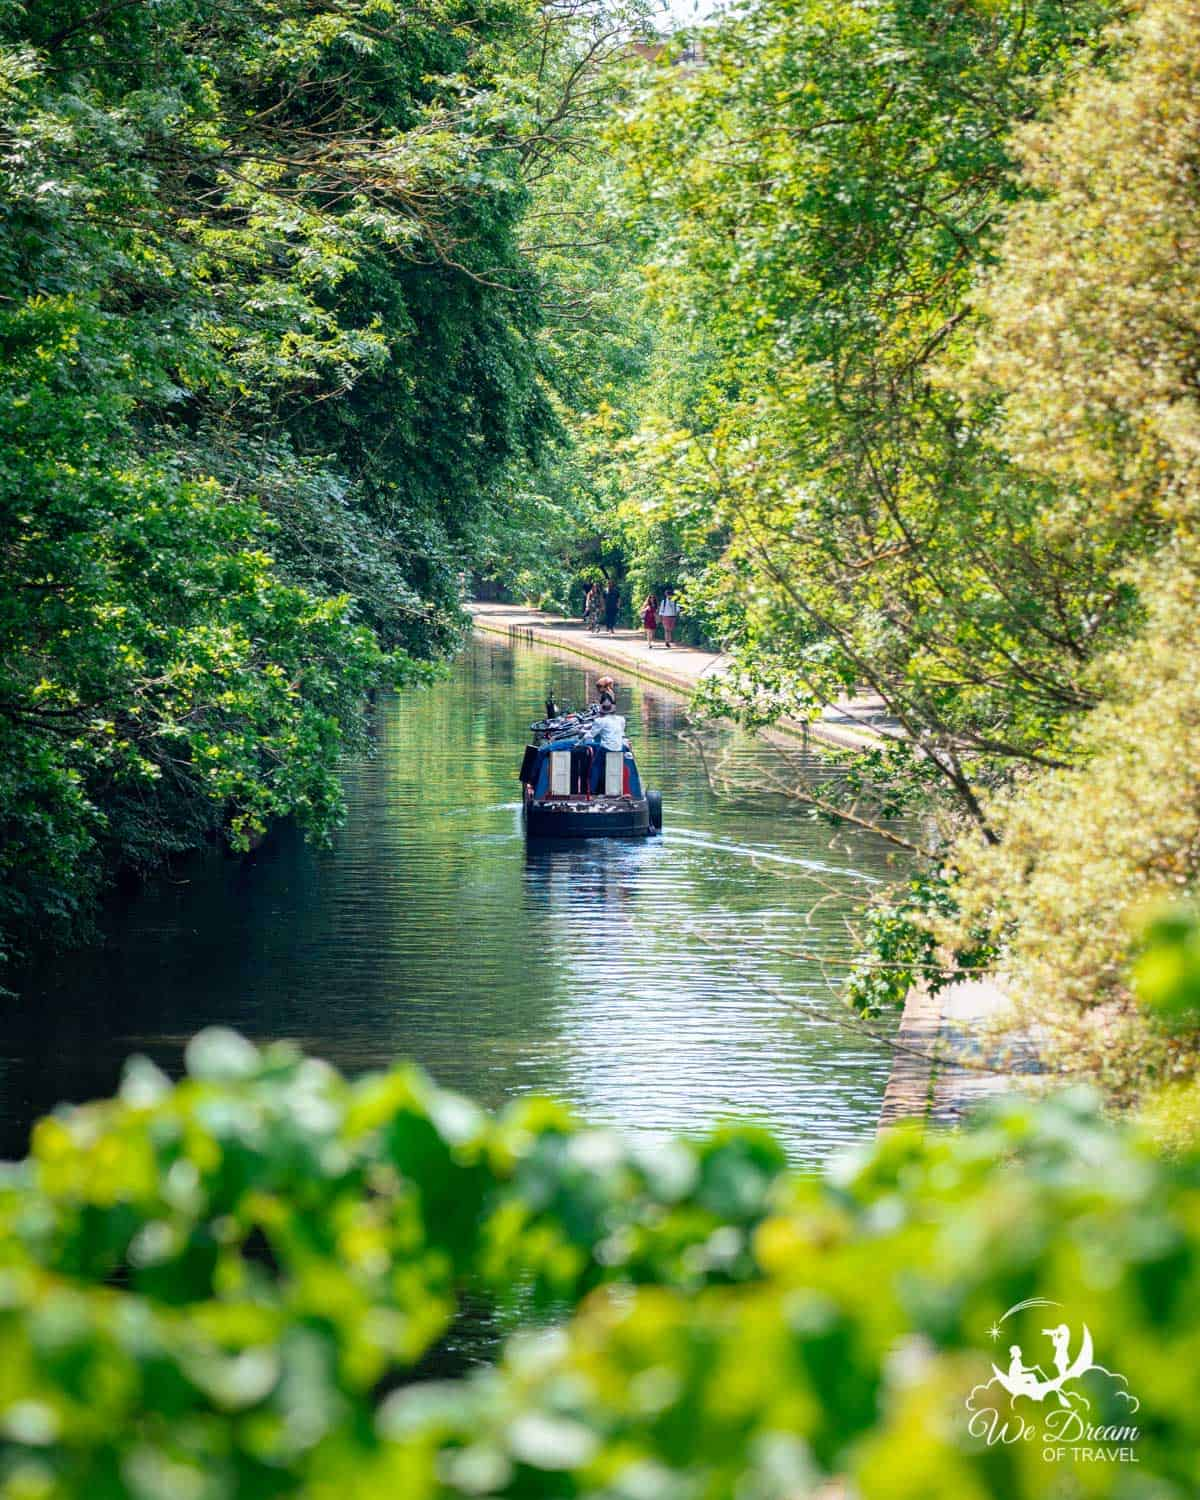 A narrow boat on the Regent's Canal framed by greenery